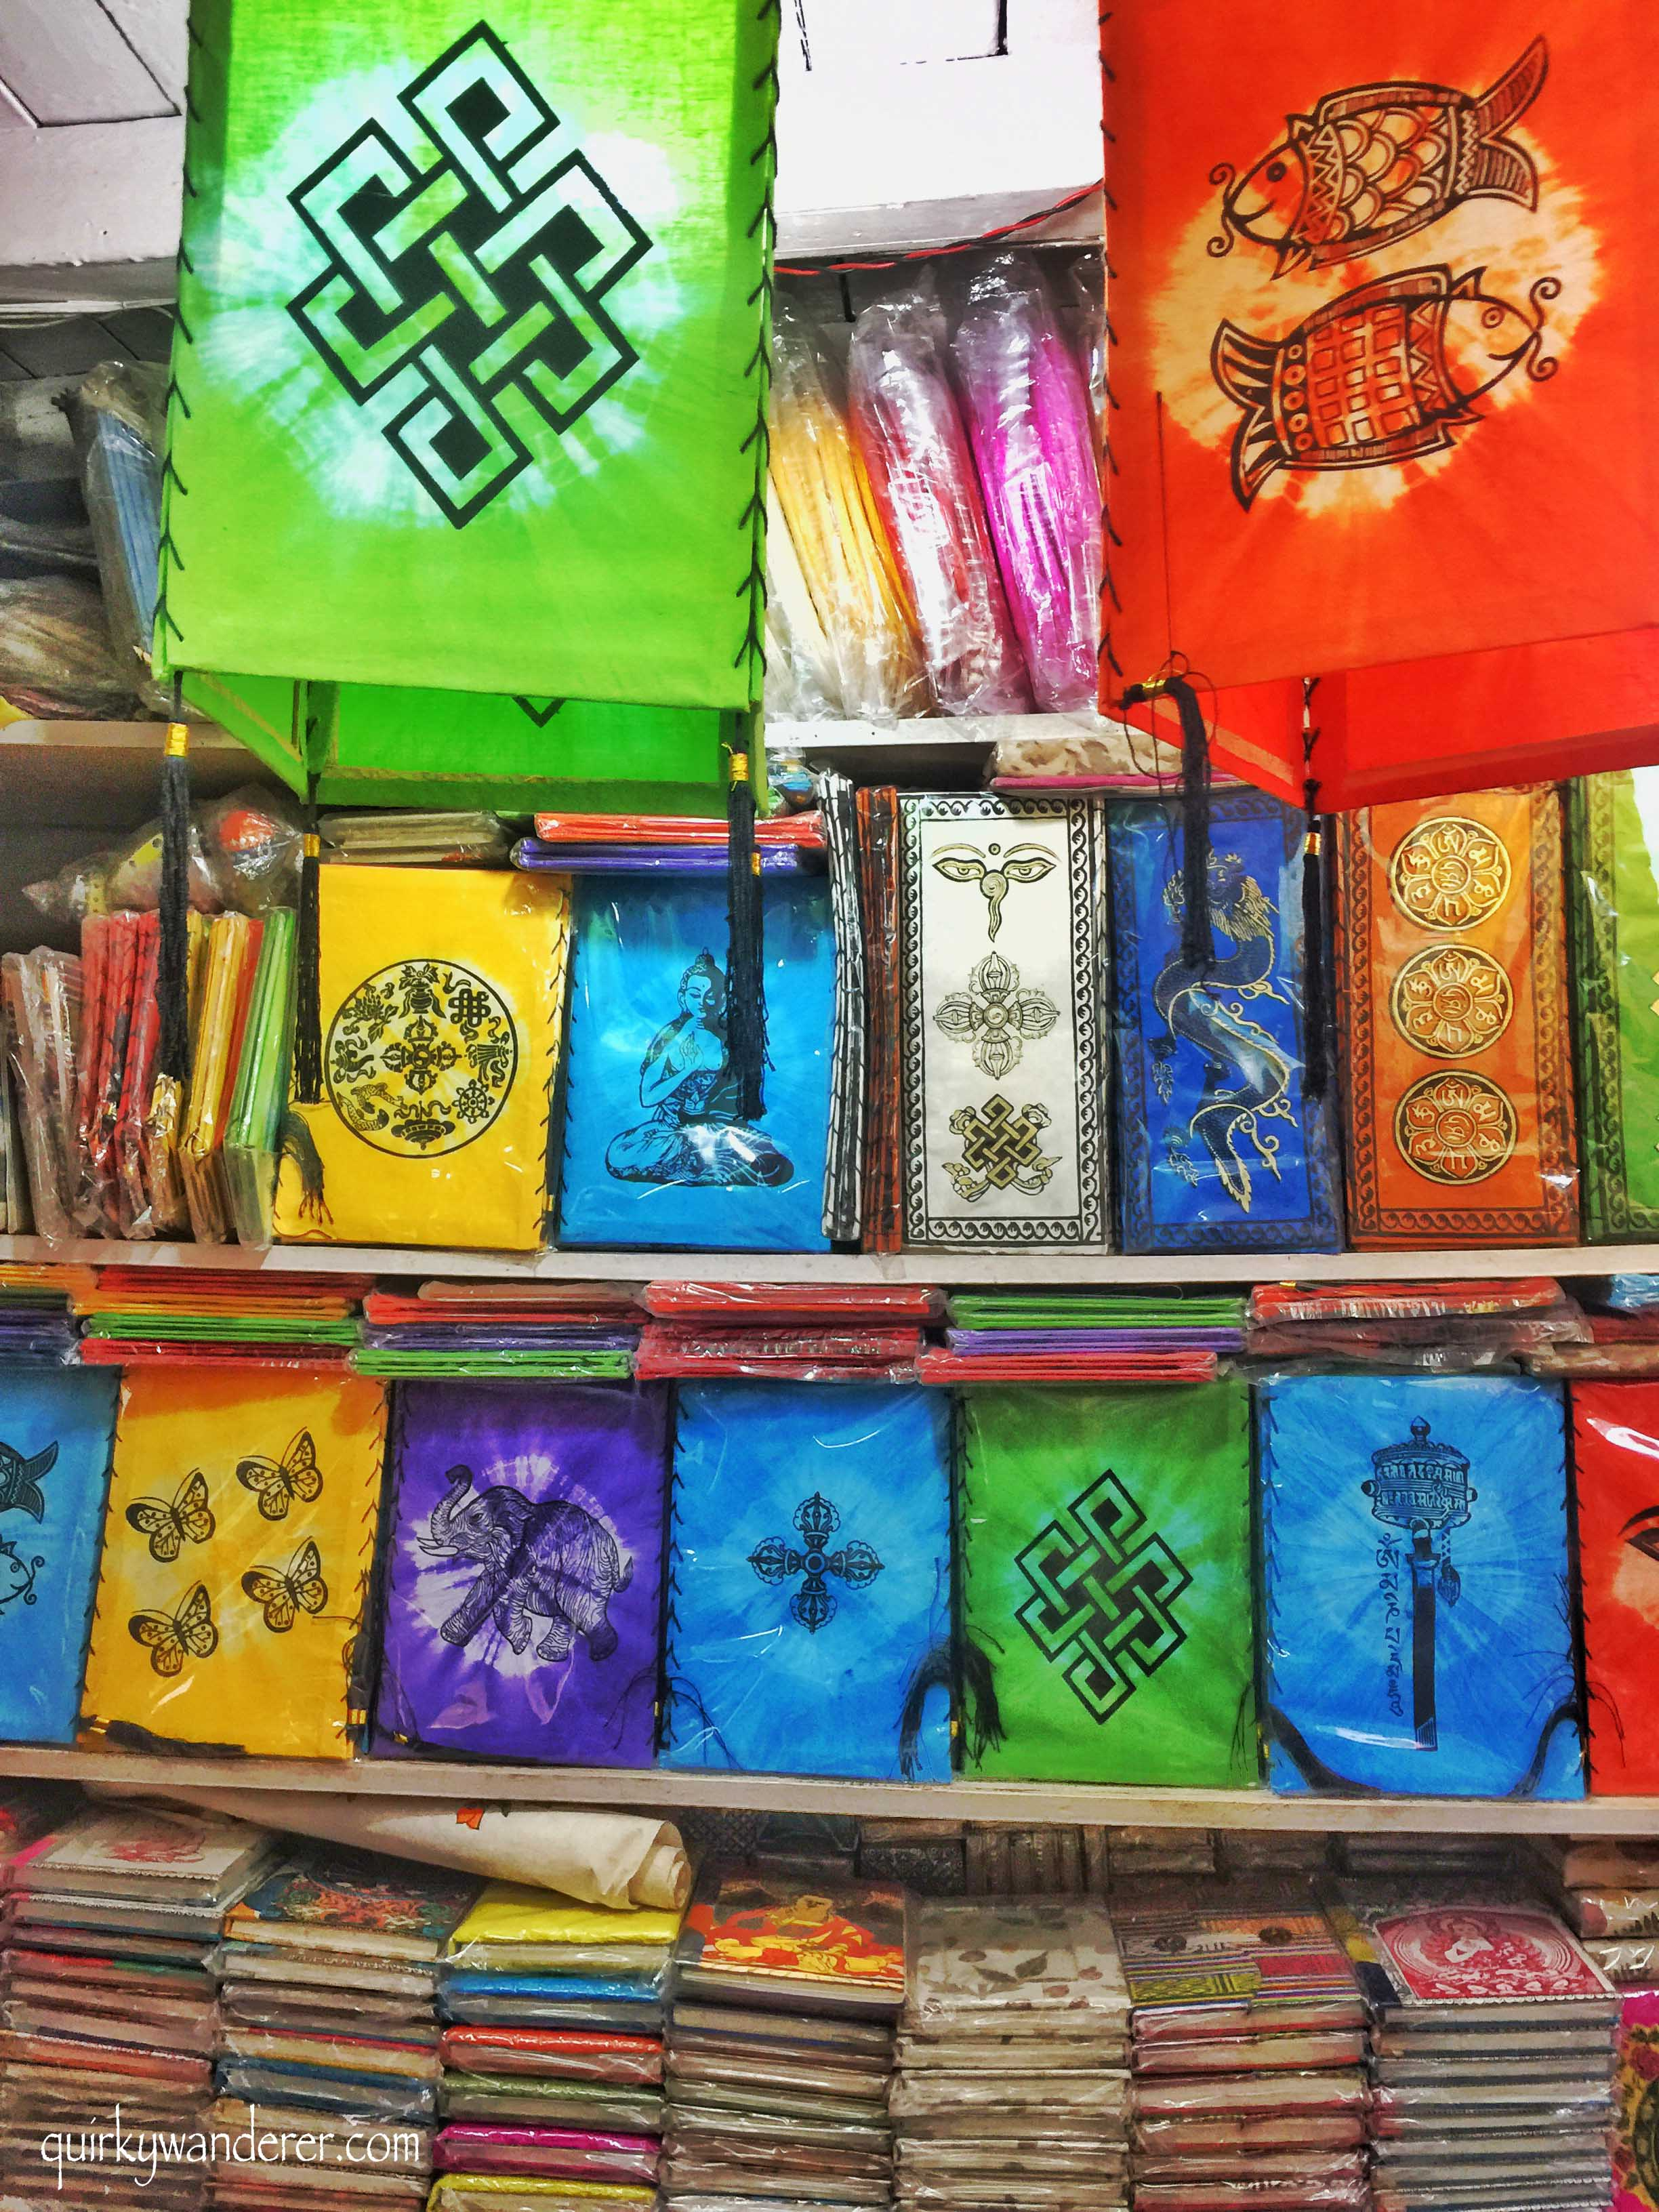 Where to buy handmade paper products in nepal